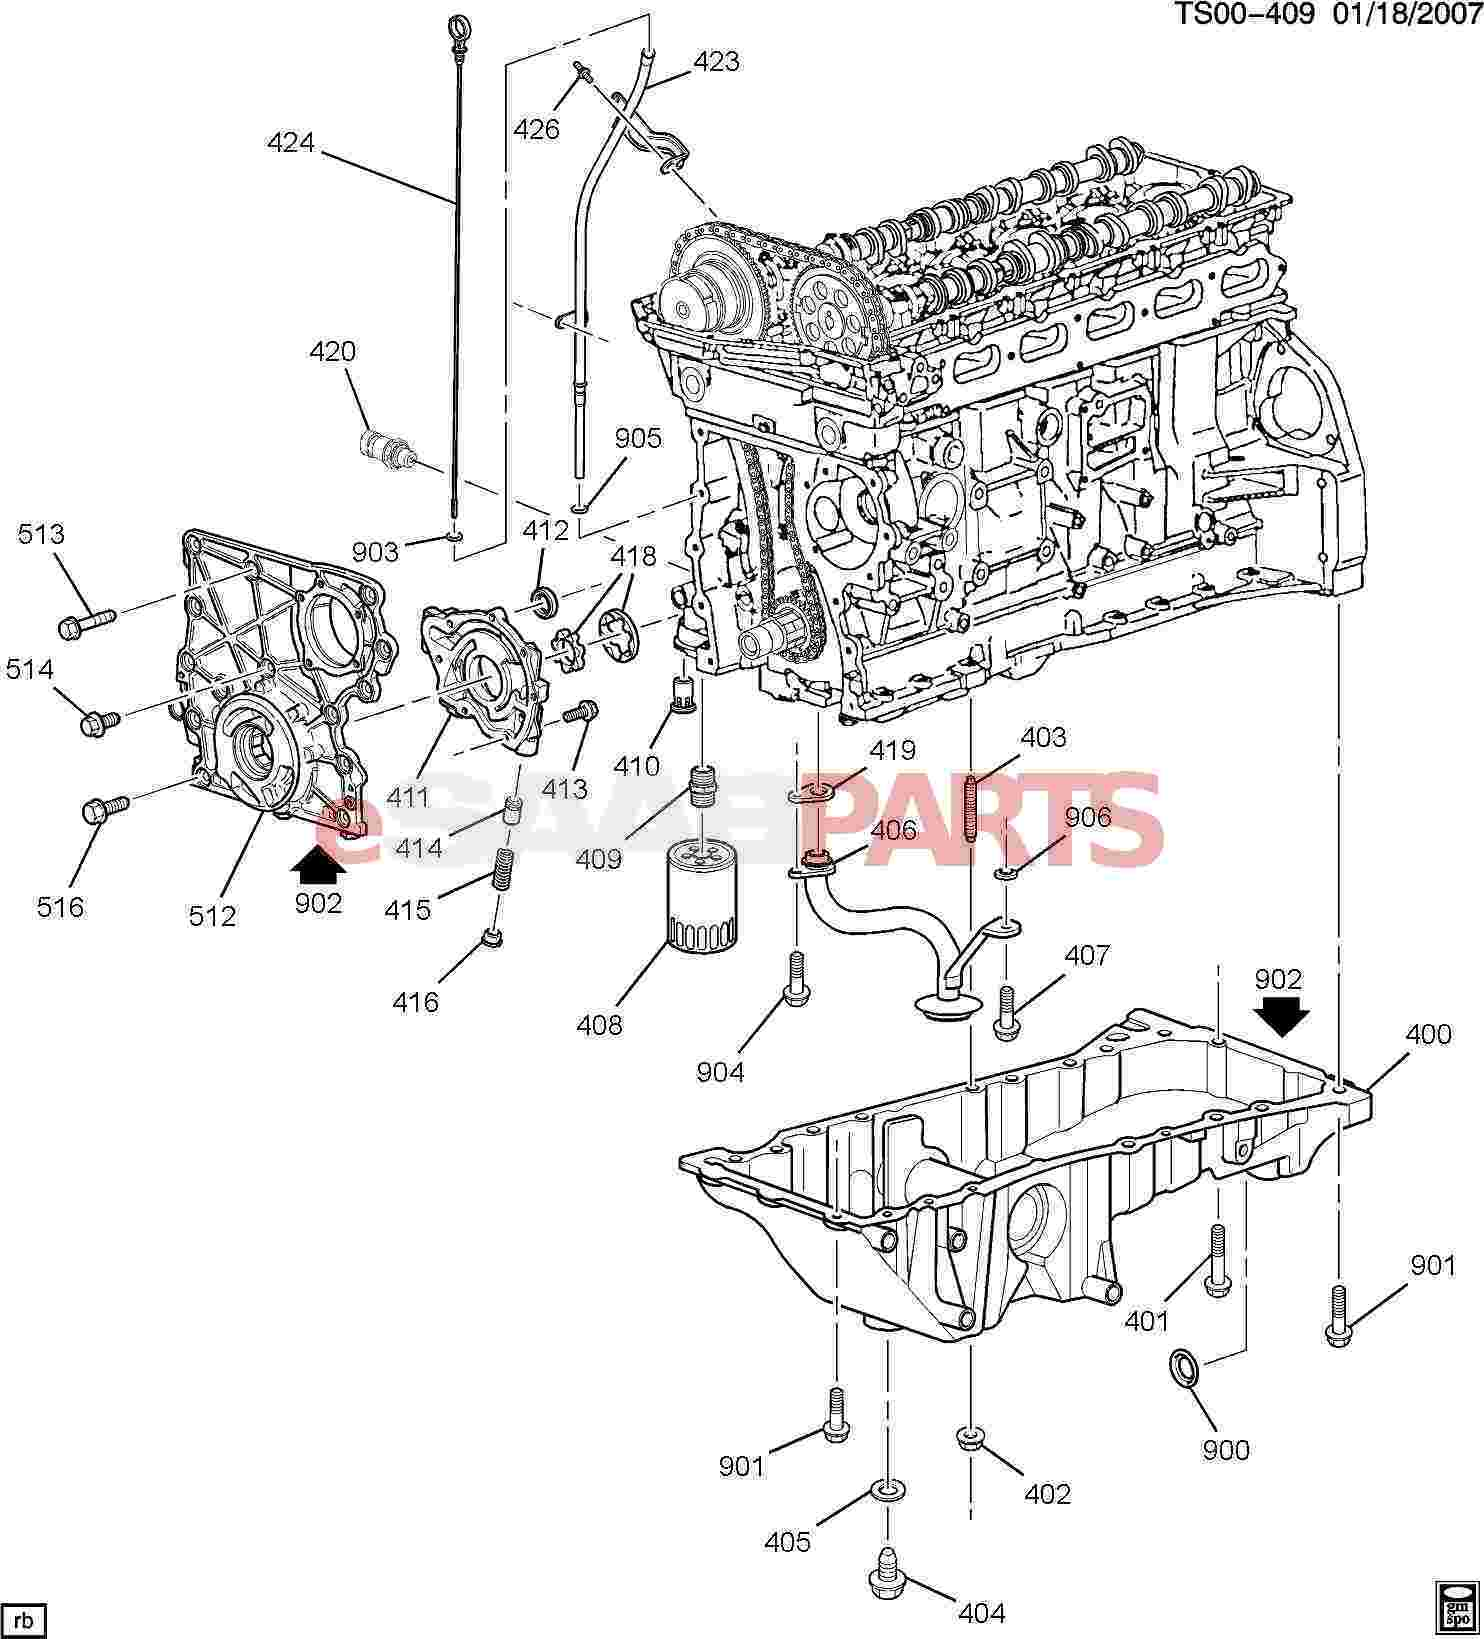 2009 saab 9 7x engine diagram premium wiring diagram designesaabparts com saab 9 7x \\u003e engine parts \\u003e engine internal 4 2s saab 9 7x aero 2009 saab 9 7x engine diagram